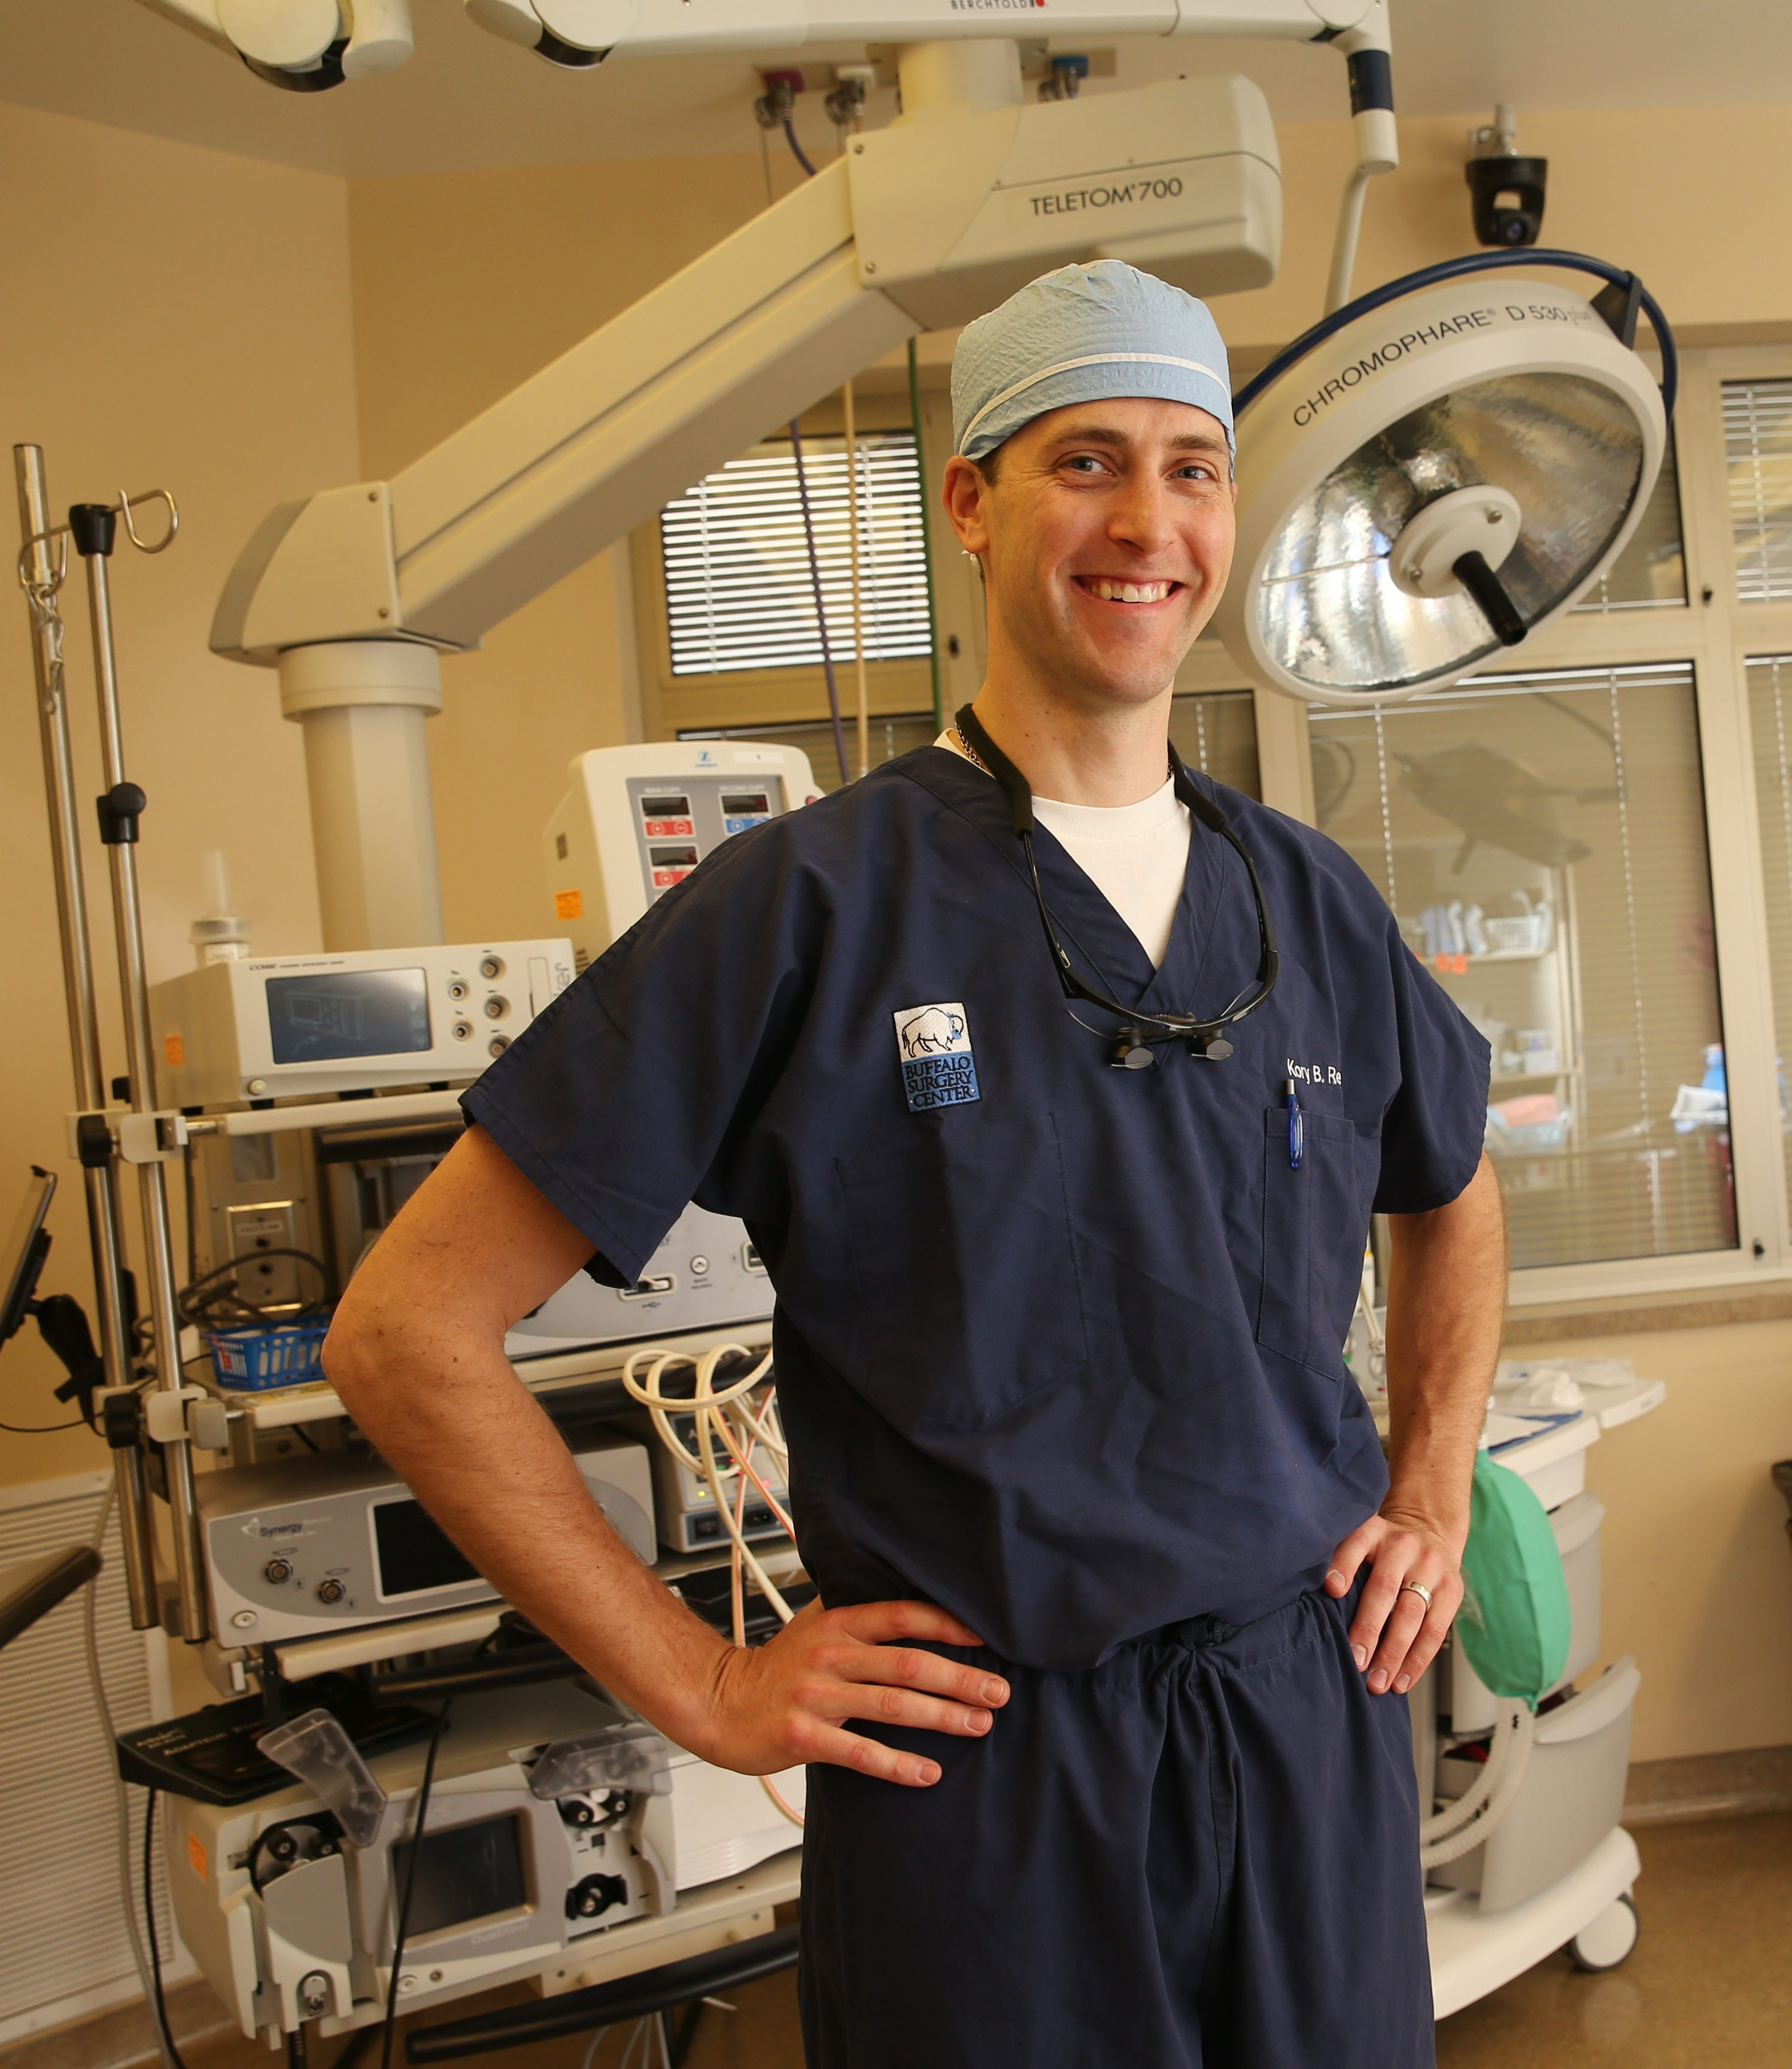 Dr. Kory Reed is an orthopedic surgeon, hand and upper extremity specialist at Excelsior Orthopaedics. He was photographed before doing a surgery, Monday, April 20, 2015.  (Sharon Cantillon/Buffalo News)